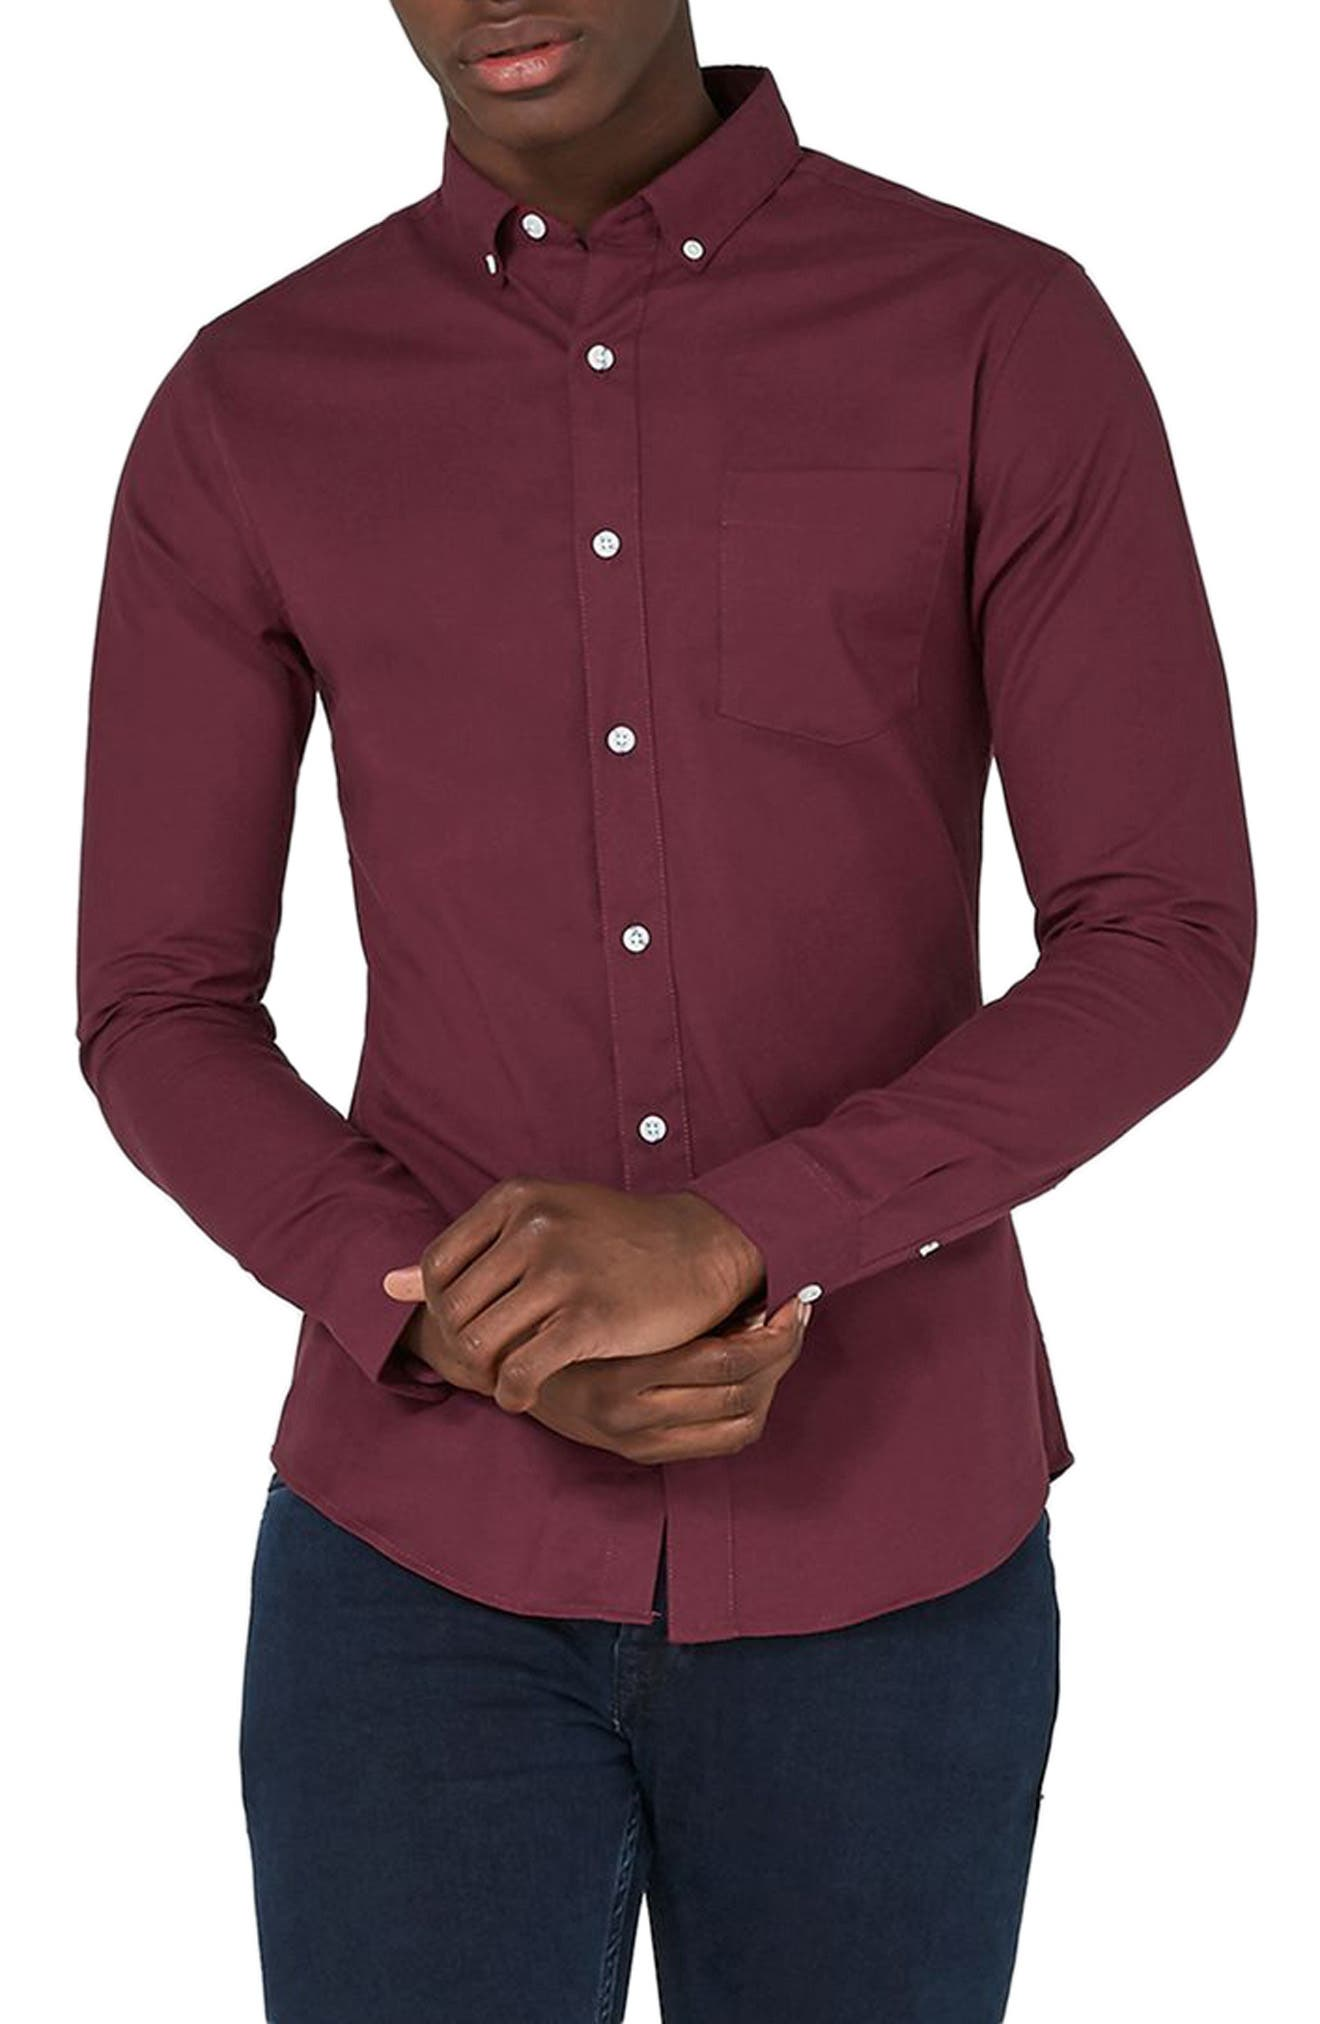 Muscle Fit Oxford Shirt,                             Main thumbnail 1, color,                             Burgundy